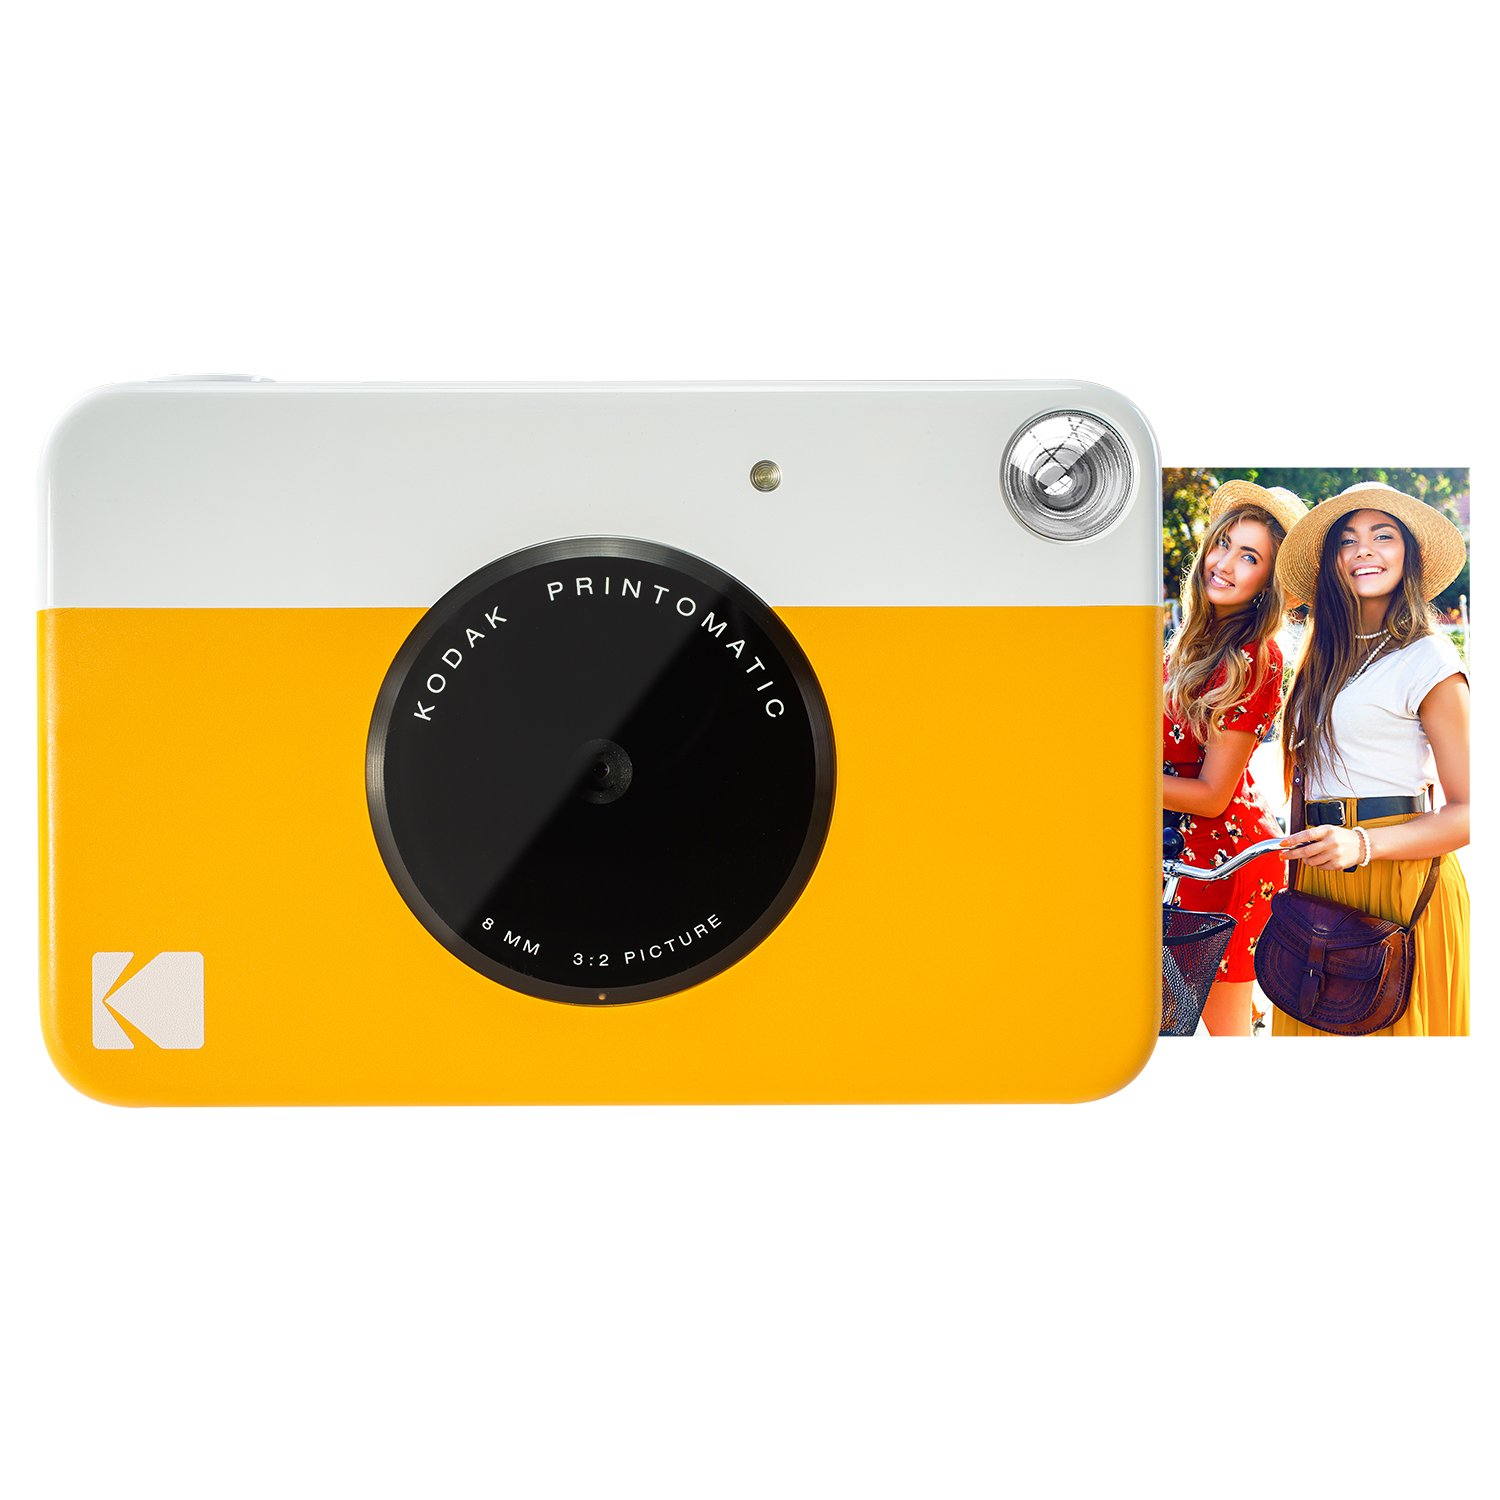 "Kodak Printomatic Digital Instant Print Camera (Yellow), Full Color Prints On Zink 2x3"" Sticky Backed Photo Paper   Print Memories Instantly by Kodak"